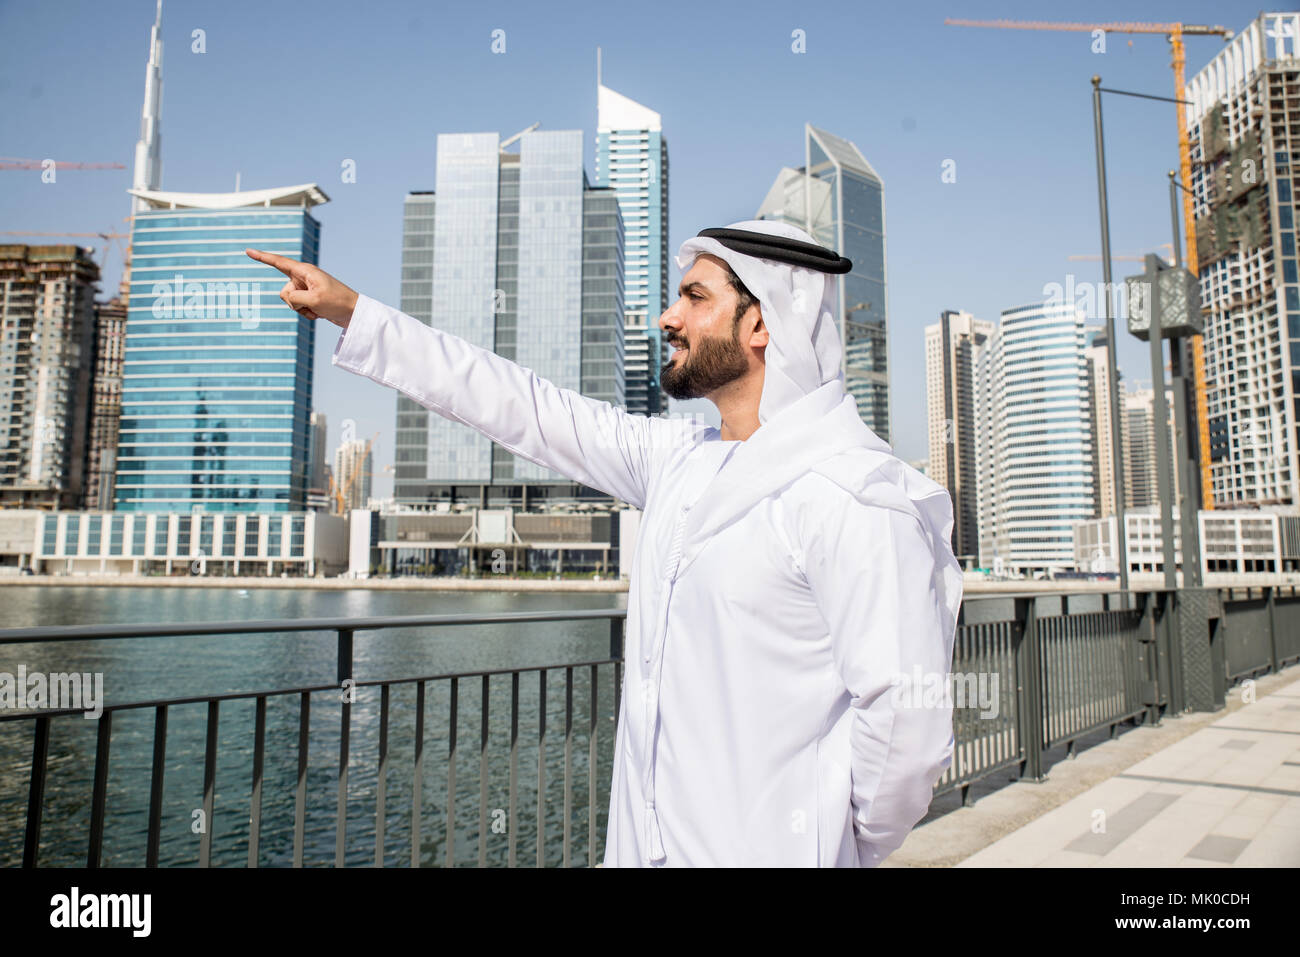 Arabic businessman wearing kandora - Portrait of traditional emirati man Stock Photo